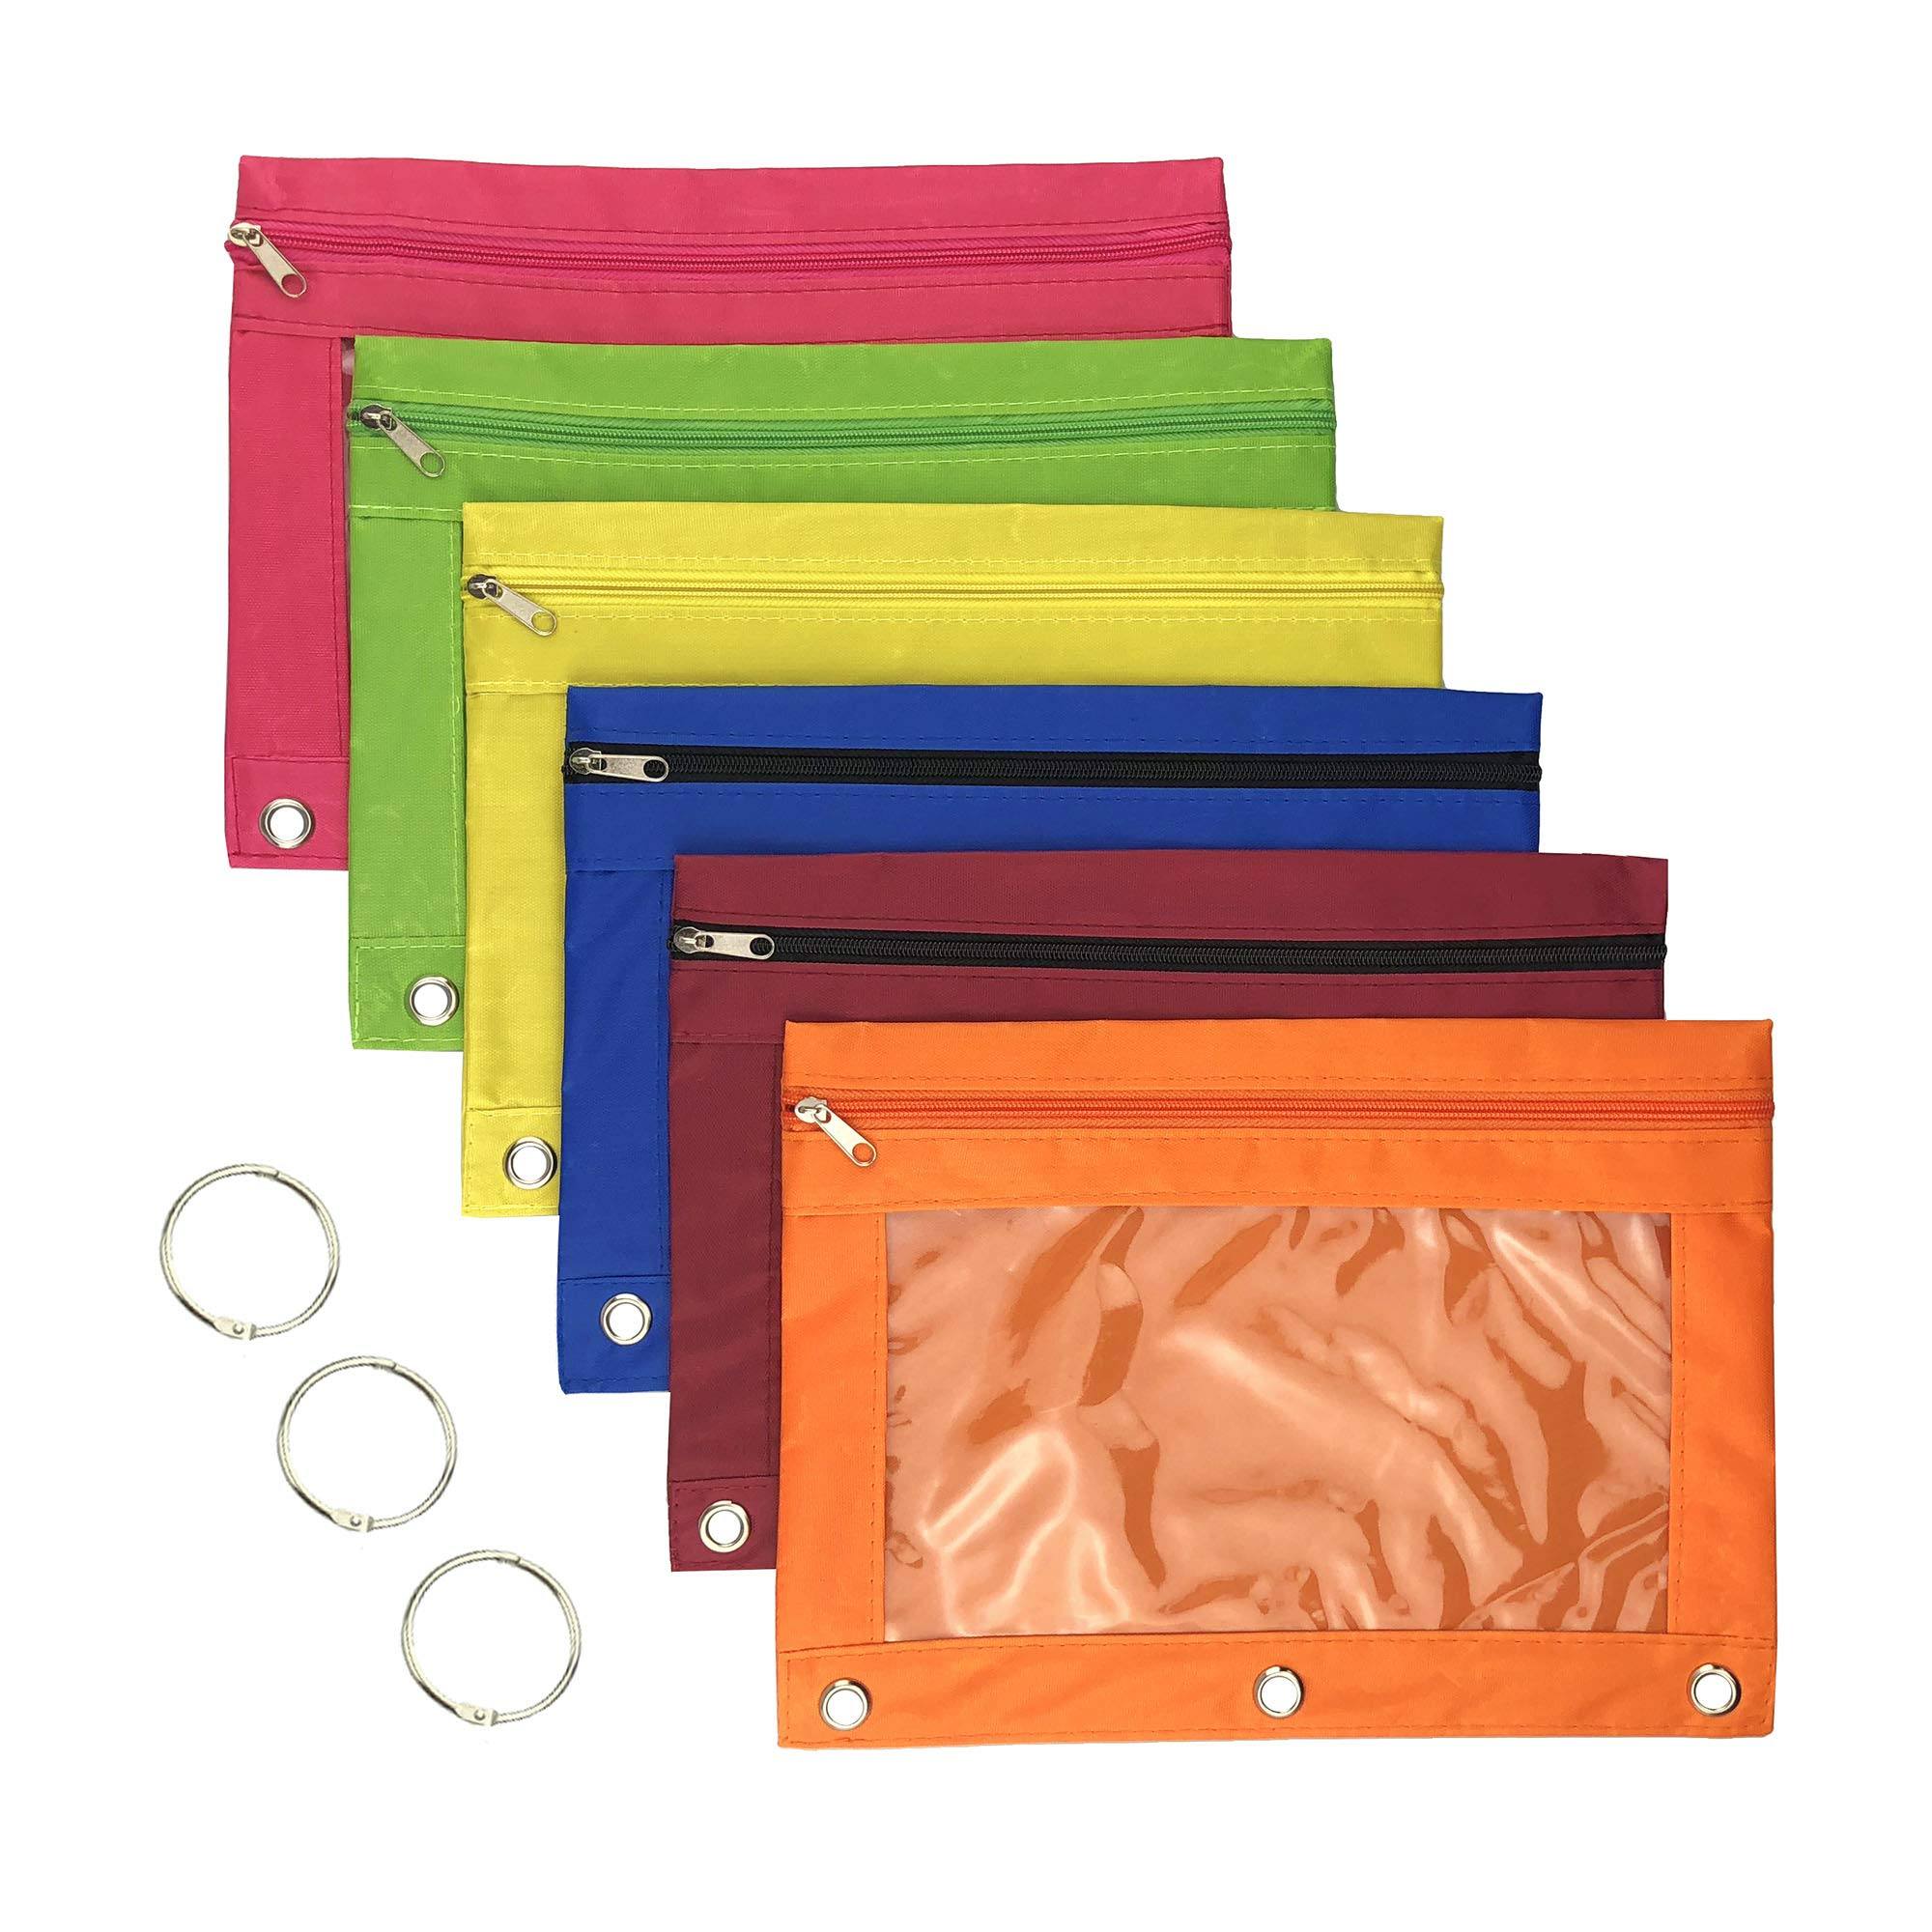 Miukada 3-Ring Pencil Pouches.Zippered Binder Pencil Bags Pencil Cases with Clear Window.Used for Storing School,Office,Artist Supplies.(6 Color Pouches Packed)(Free Bonus of Three 1.5'' Binder Rings)